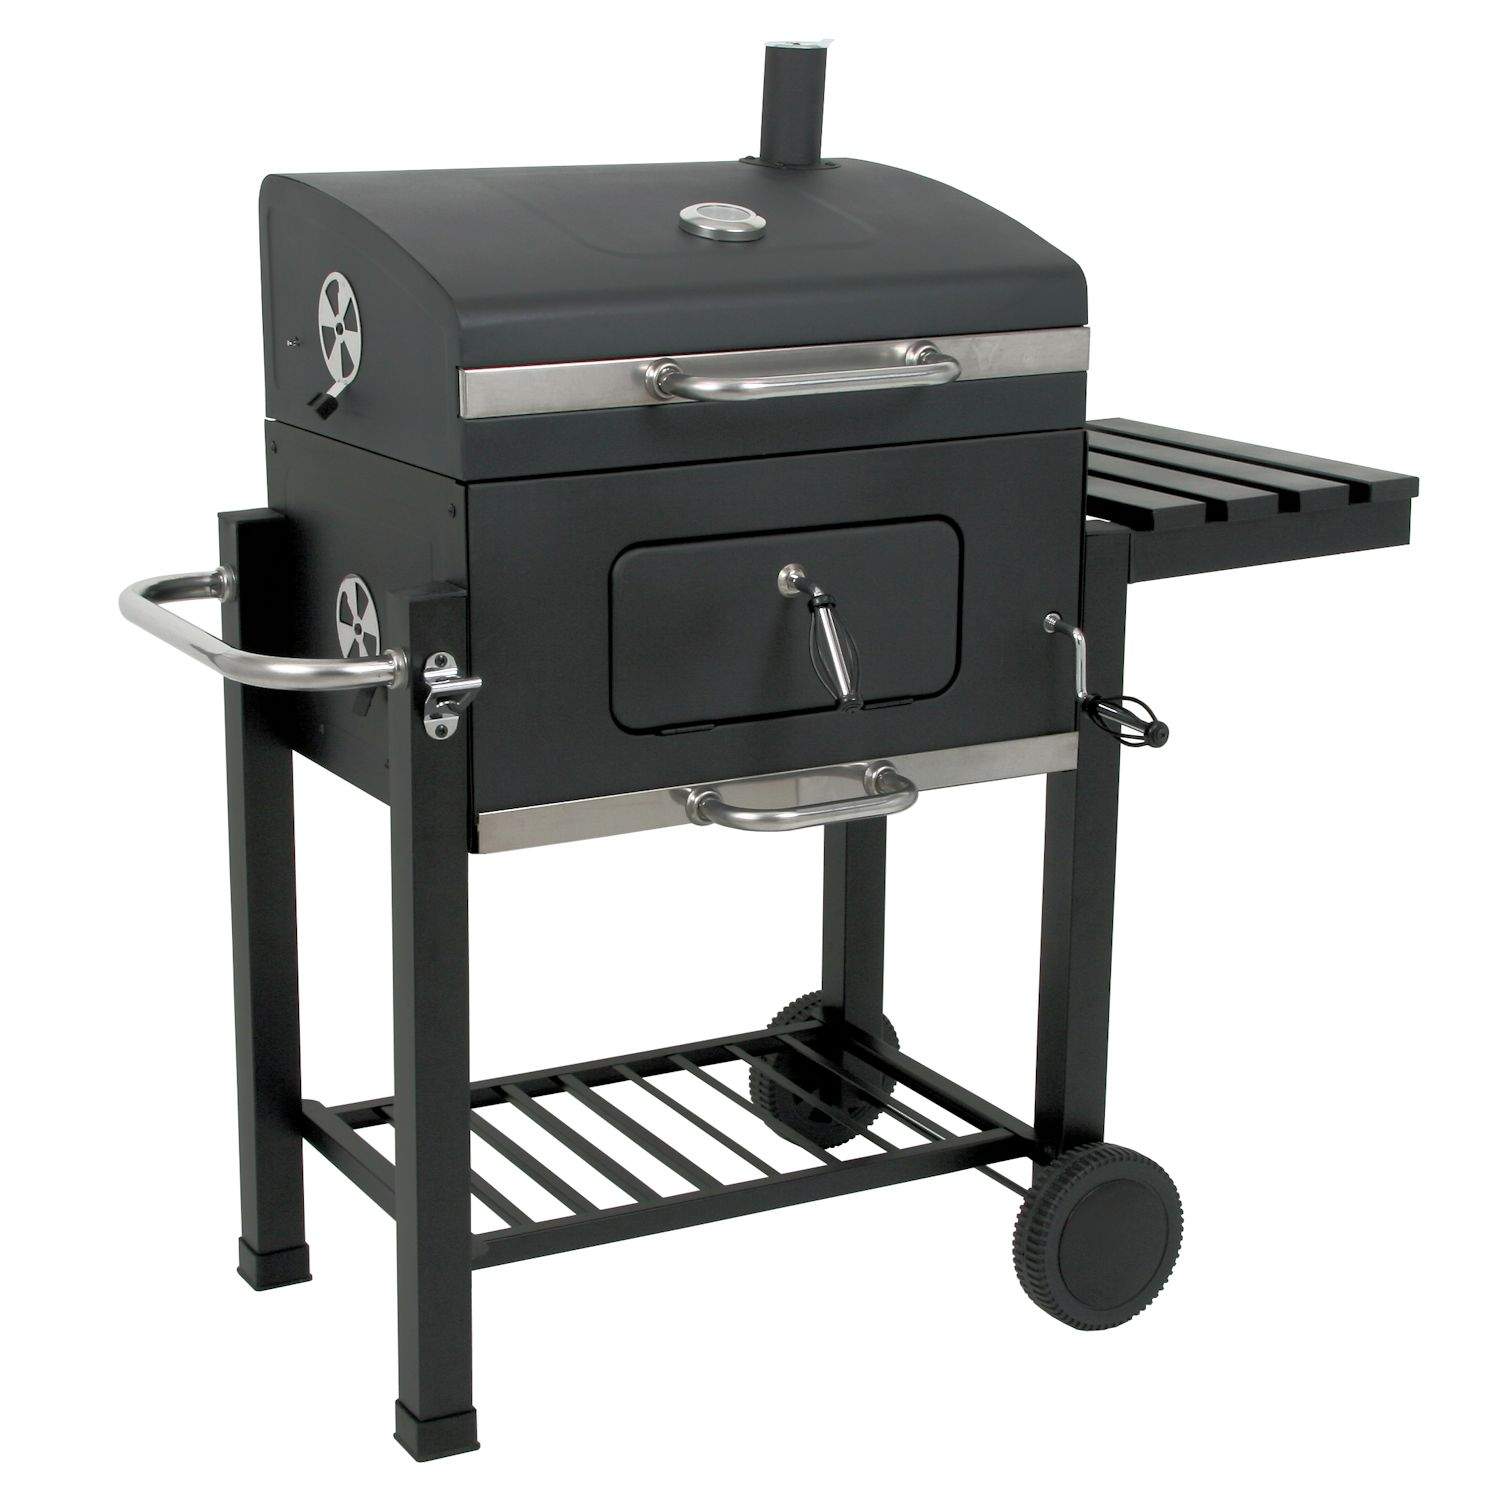 bbq bull black oak smoker holzkohle bbq grillwagen barbecue grill ebay. Black Bedroom Furniture Sets. Home Design Ideas